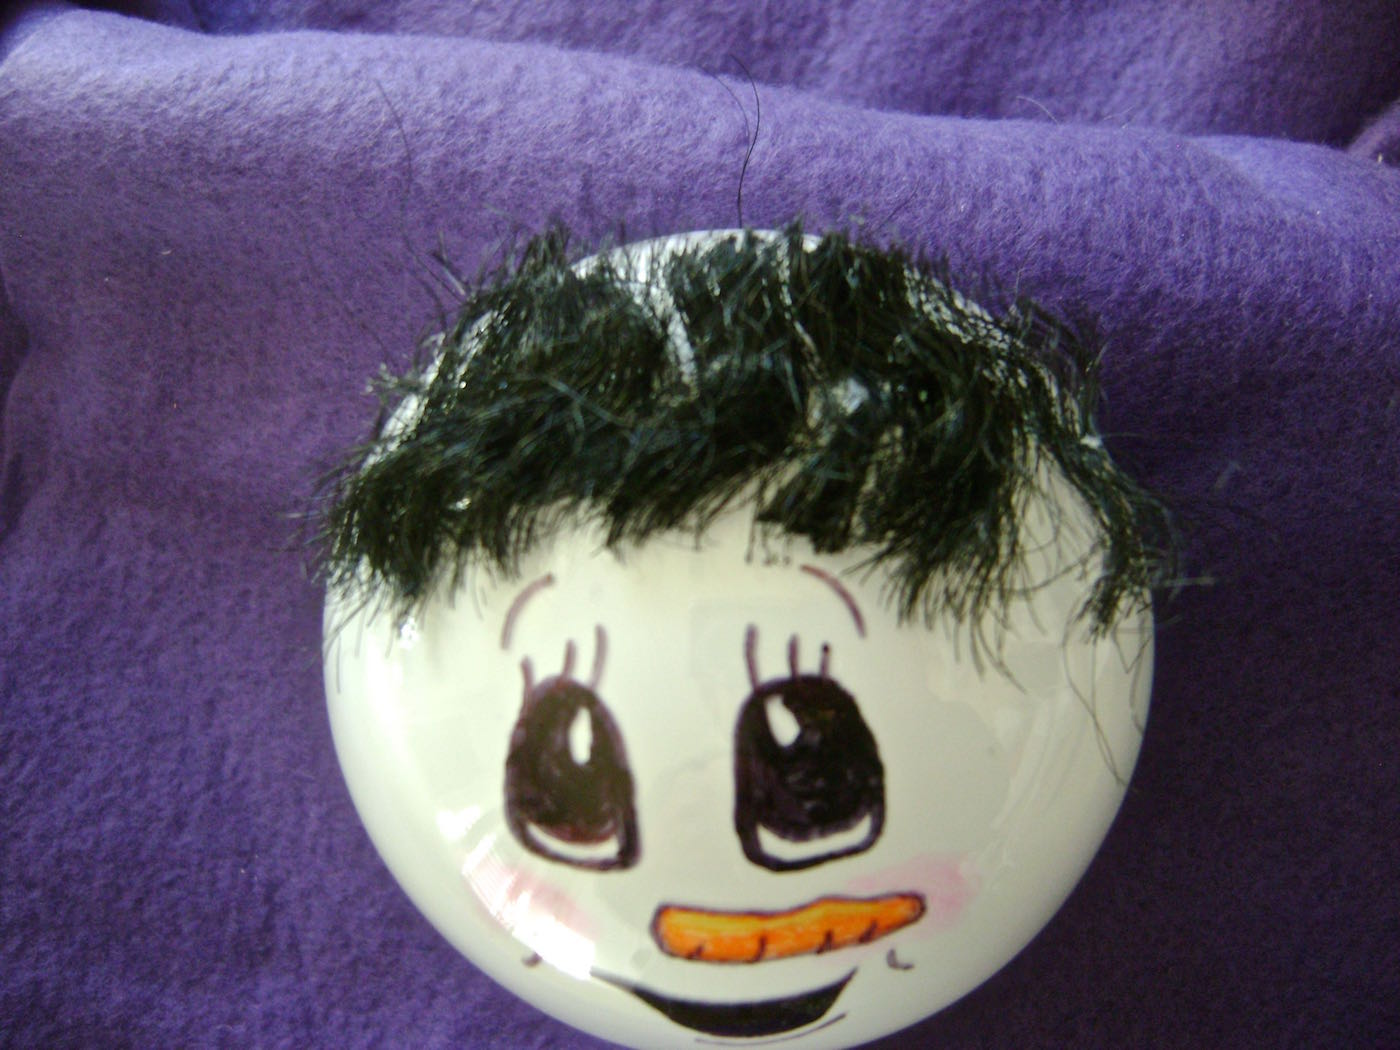 step 6 - Apply hot glue in a line across the top of the head then drape doll hair across the glue line. Don't worry about the hair length. Trim the hair once it is in place and secured to the glue.